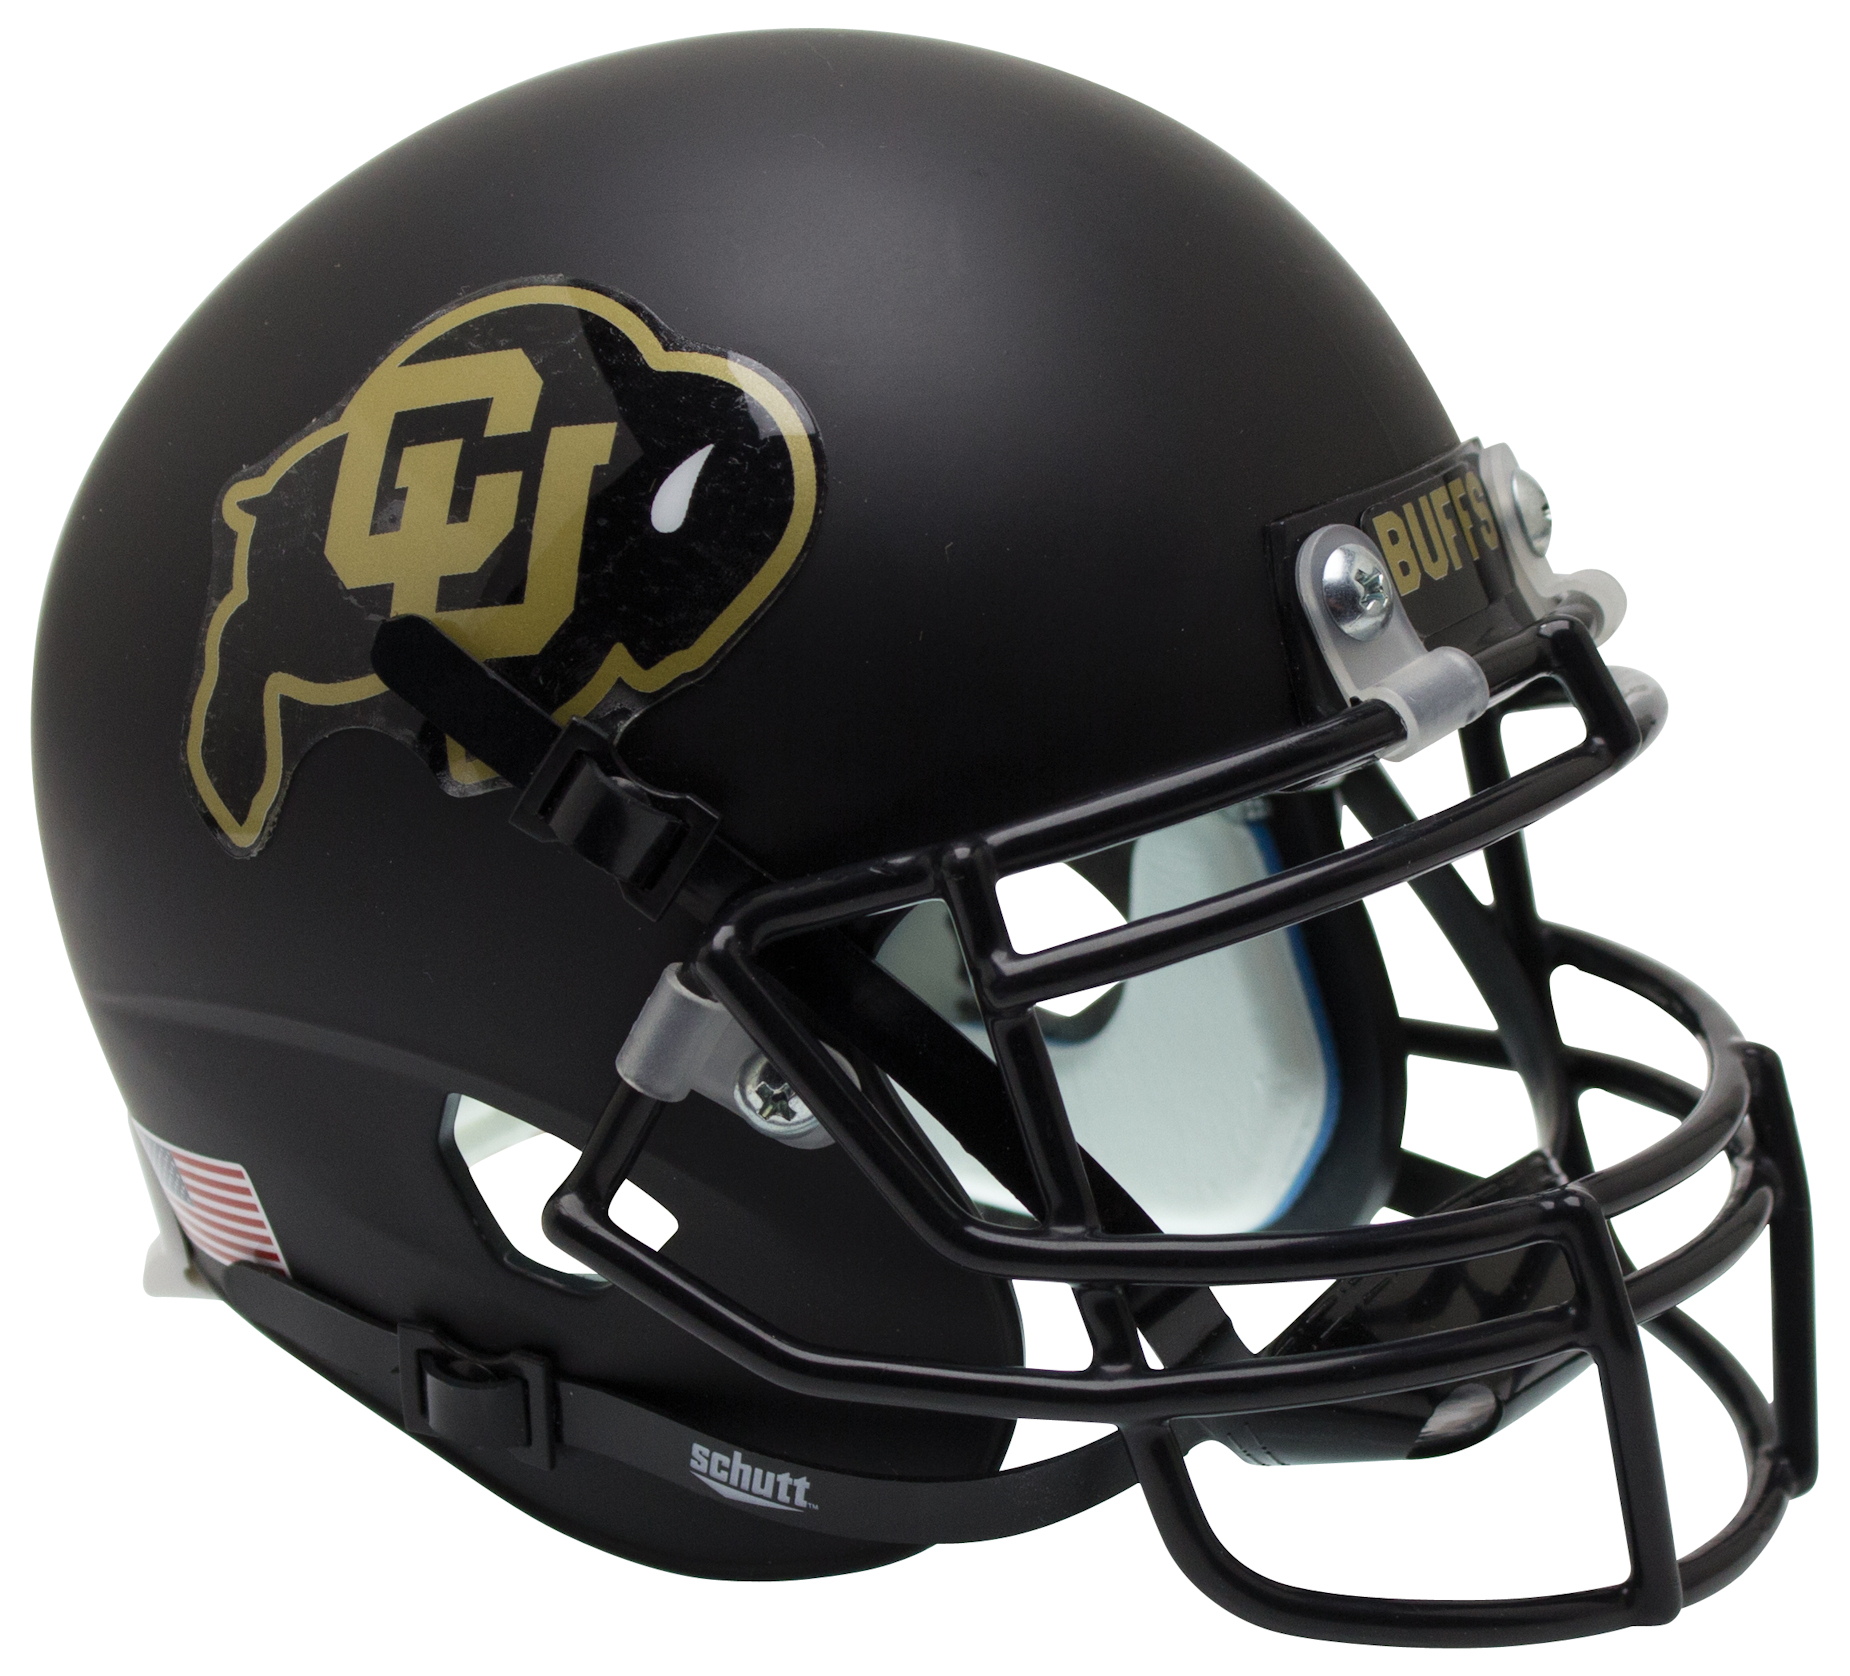 Colorado Buffaloes Authentic College XP Football Helmet Schutt <B>Black</B>